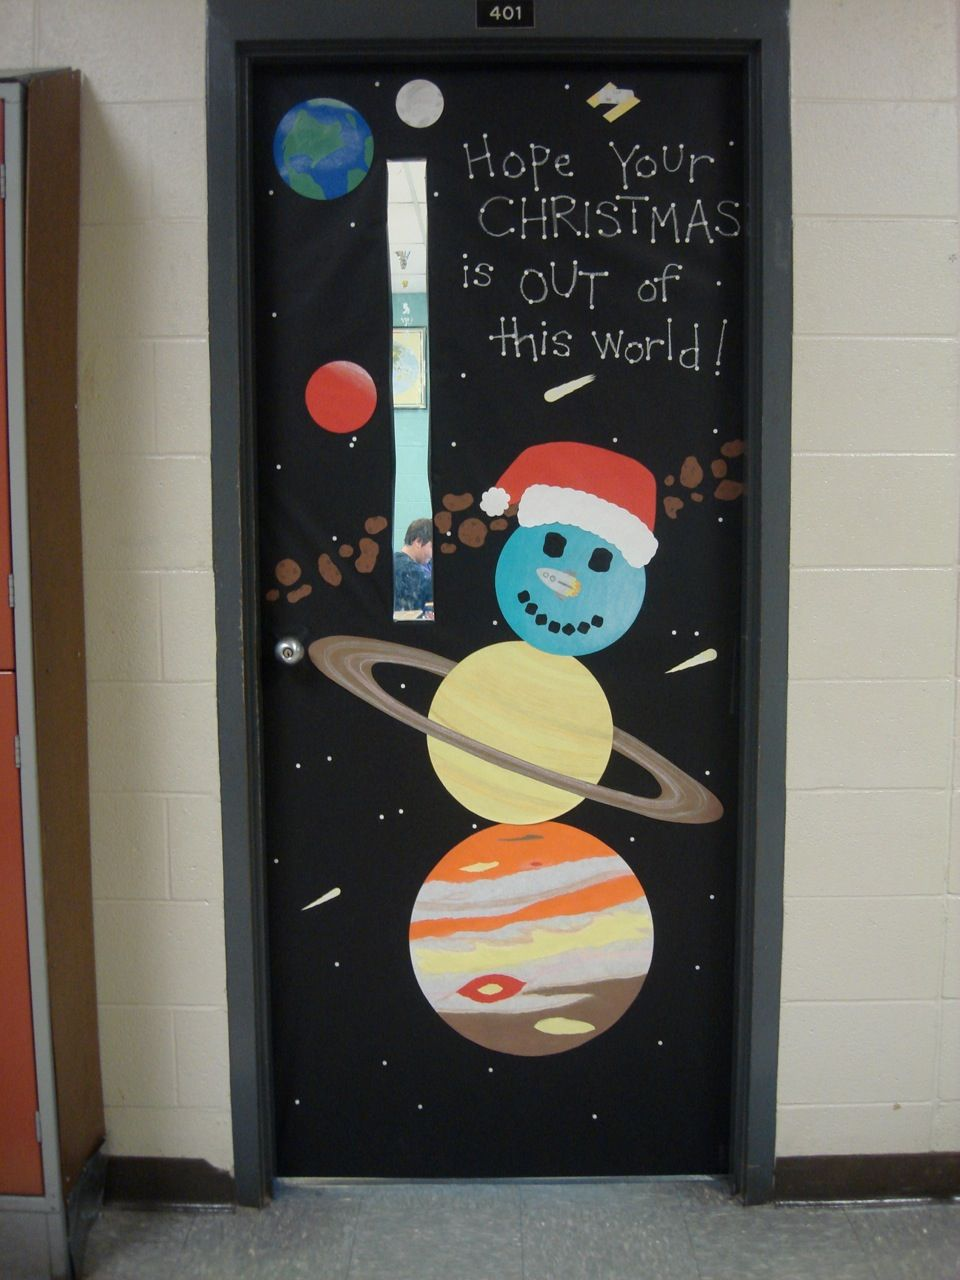 Christmas Door Decorating Contest And The Science Teacher Took First Place